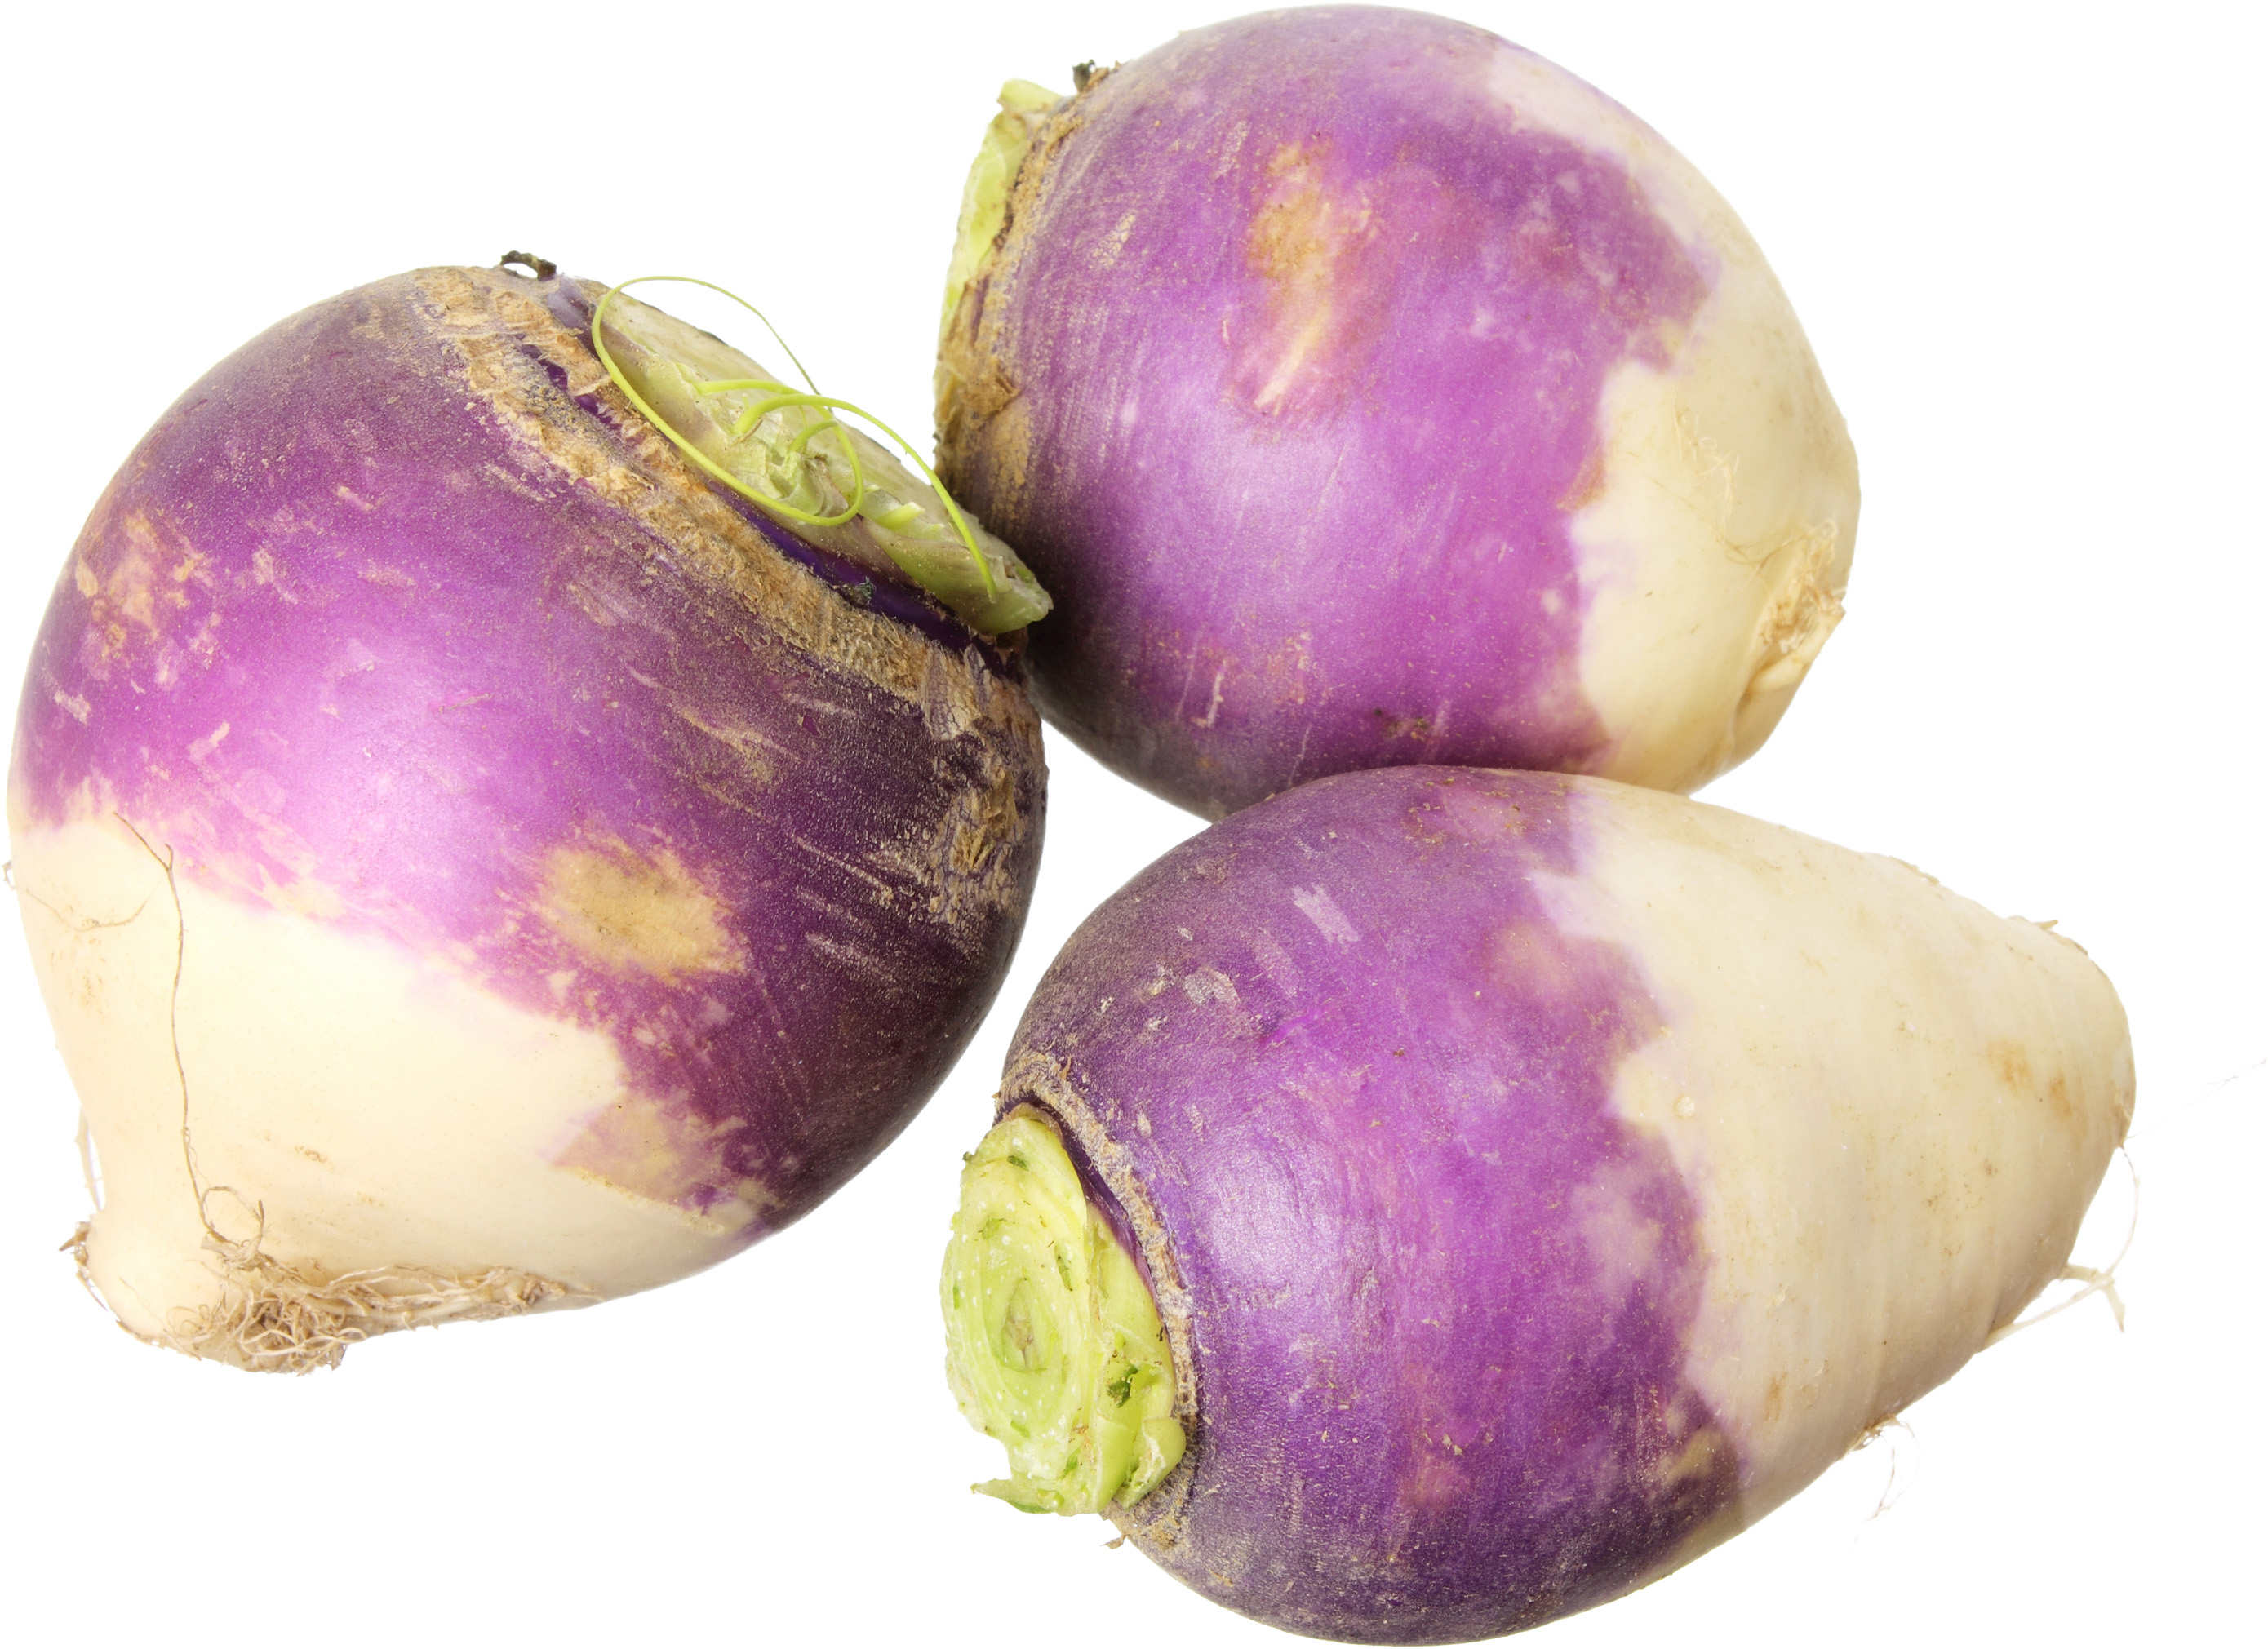 Oregon turnips grown for schools